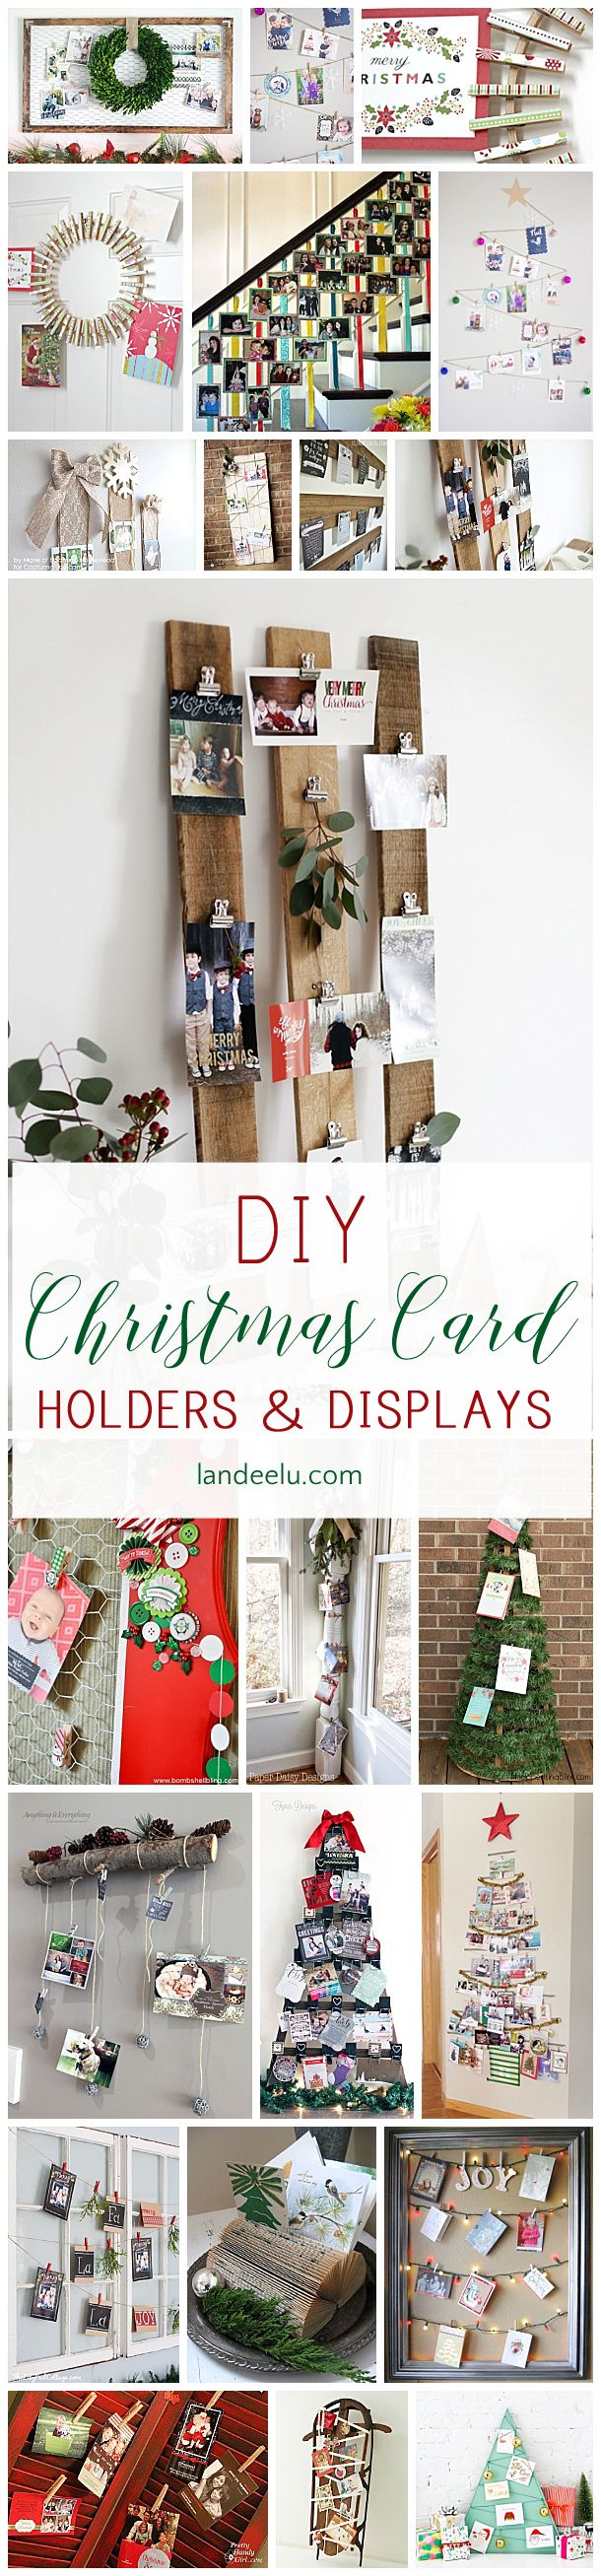 I Made My Own Christmas Card Holder! | Chicken House Diy Simple | Pinterest  | Christmas Card Holders, Holidays And Craft